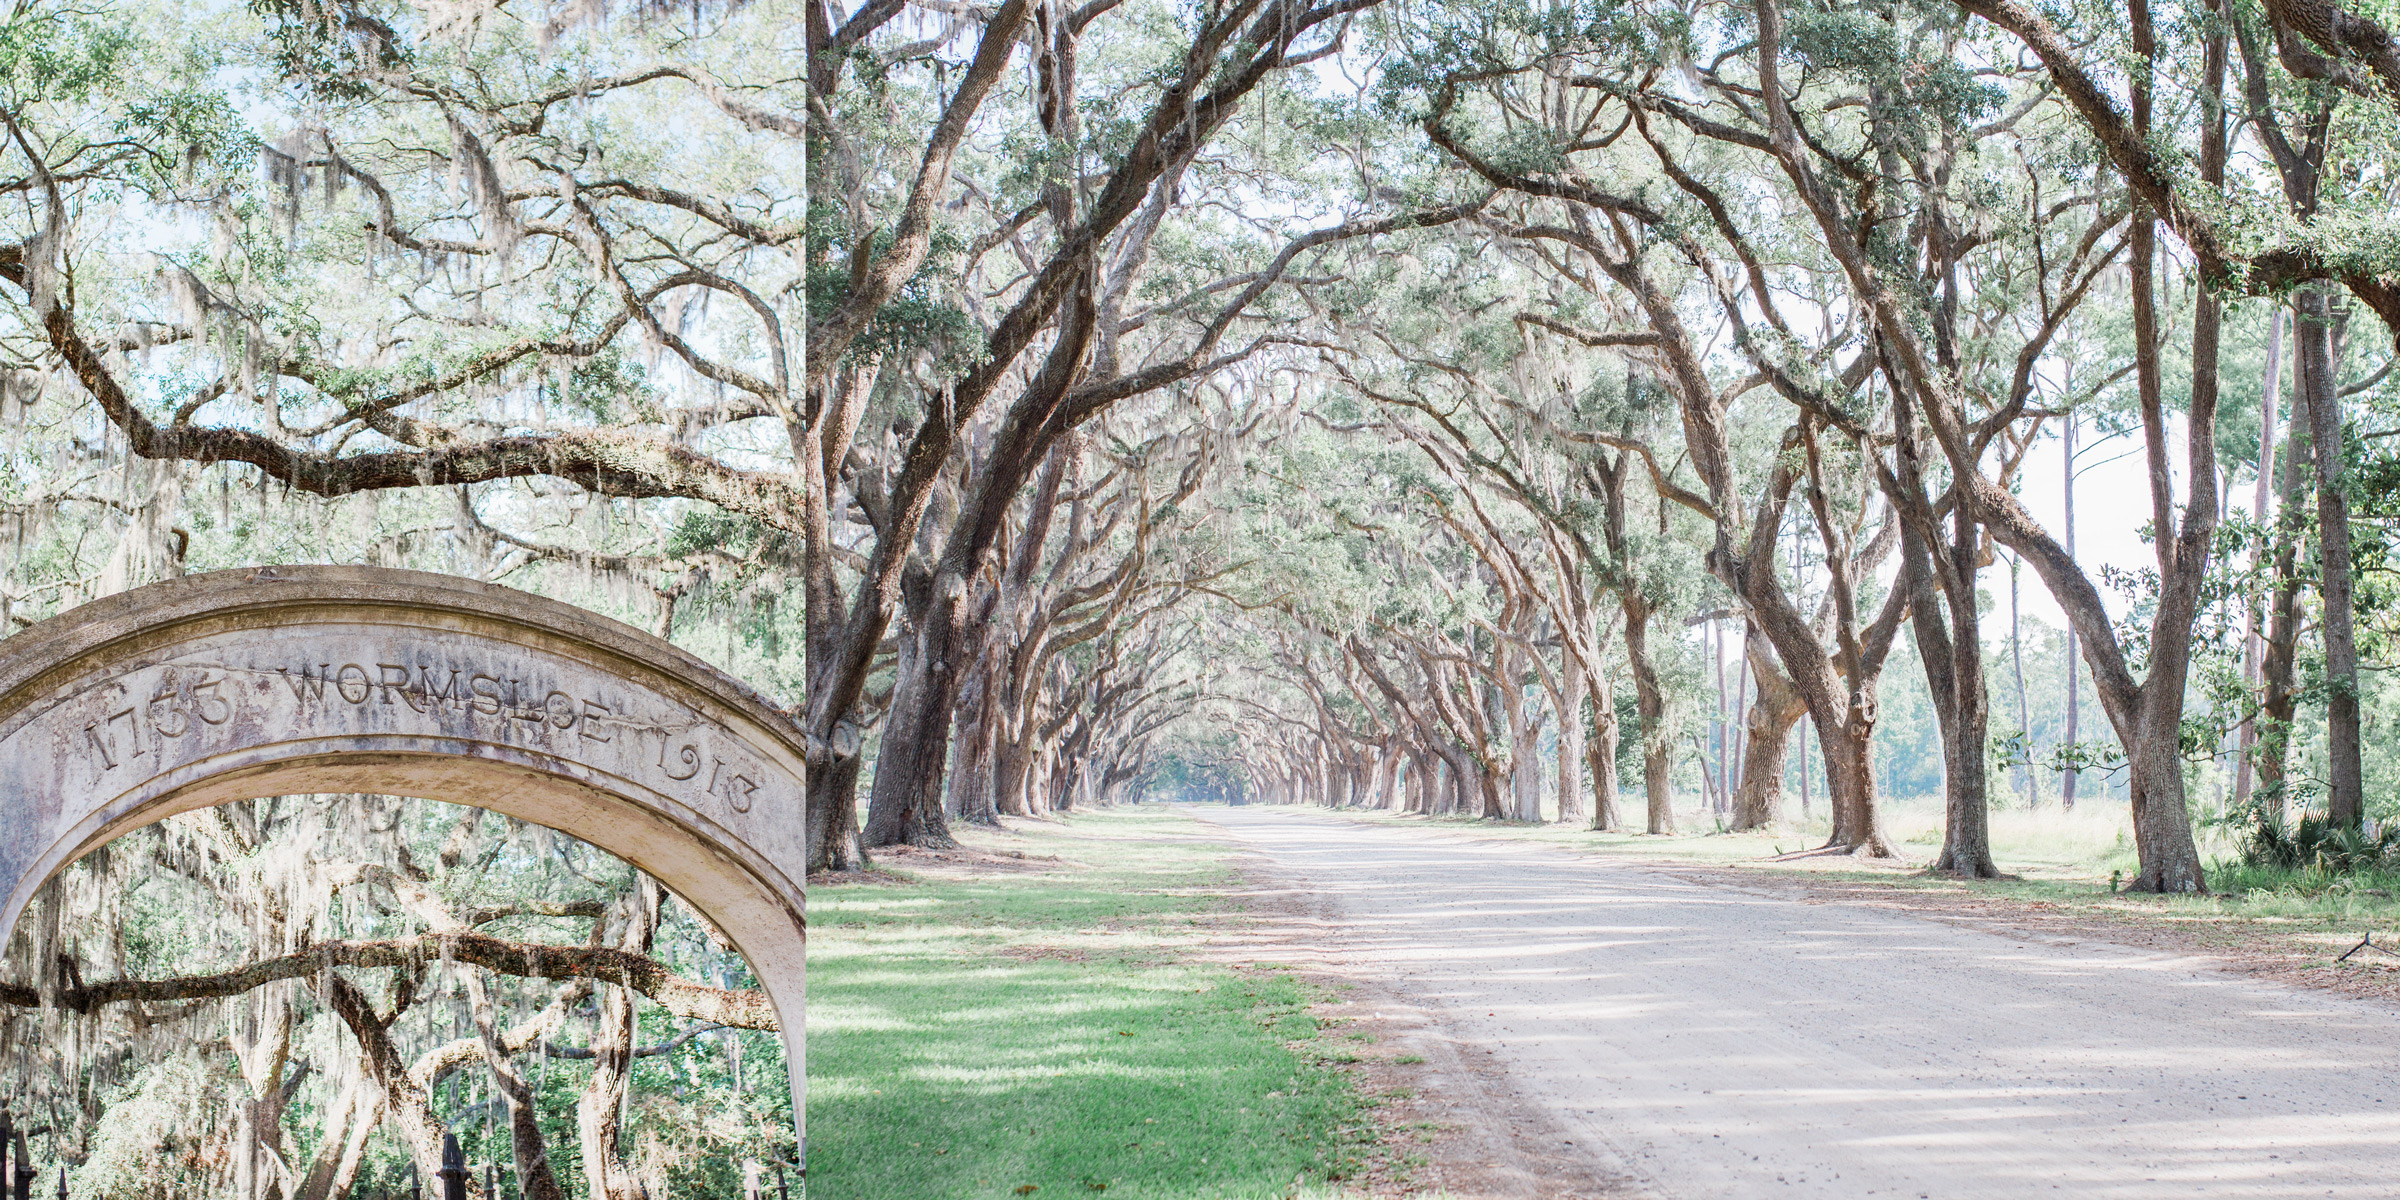 Wormsloe Historical Site Surprise Proposal, Engagement